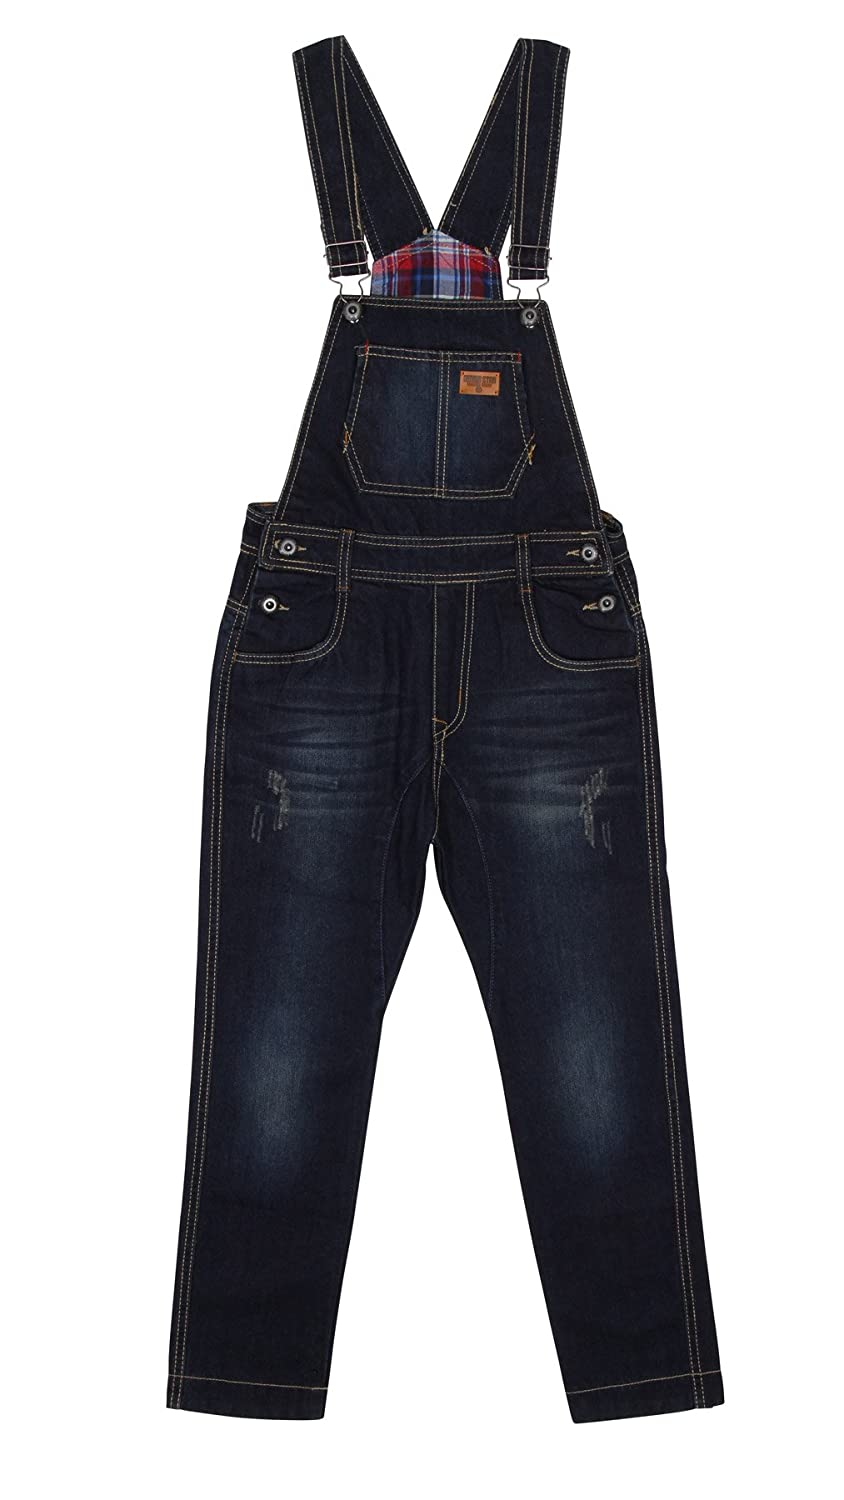 Children's Darkwash Denim Dungarees Blue Slim leg dungarees for Boys and Girls a KID047 Genius Star